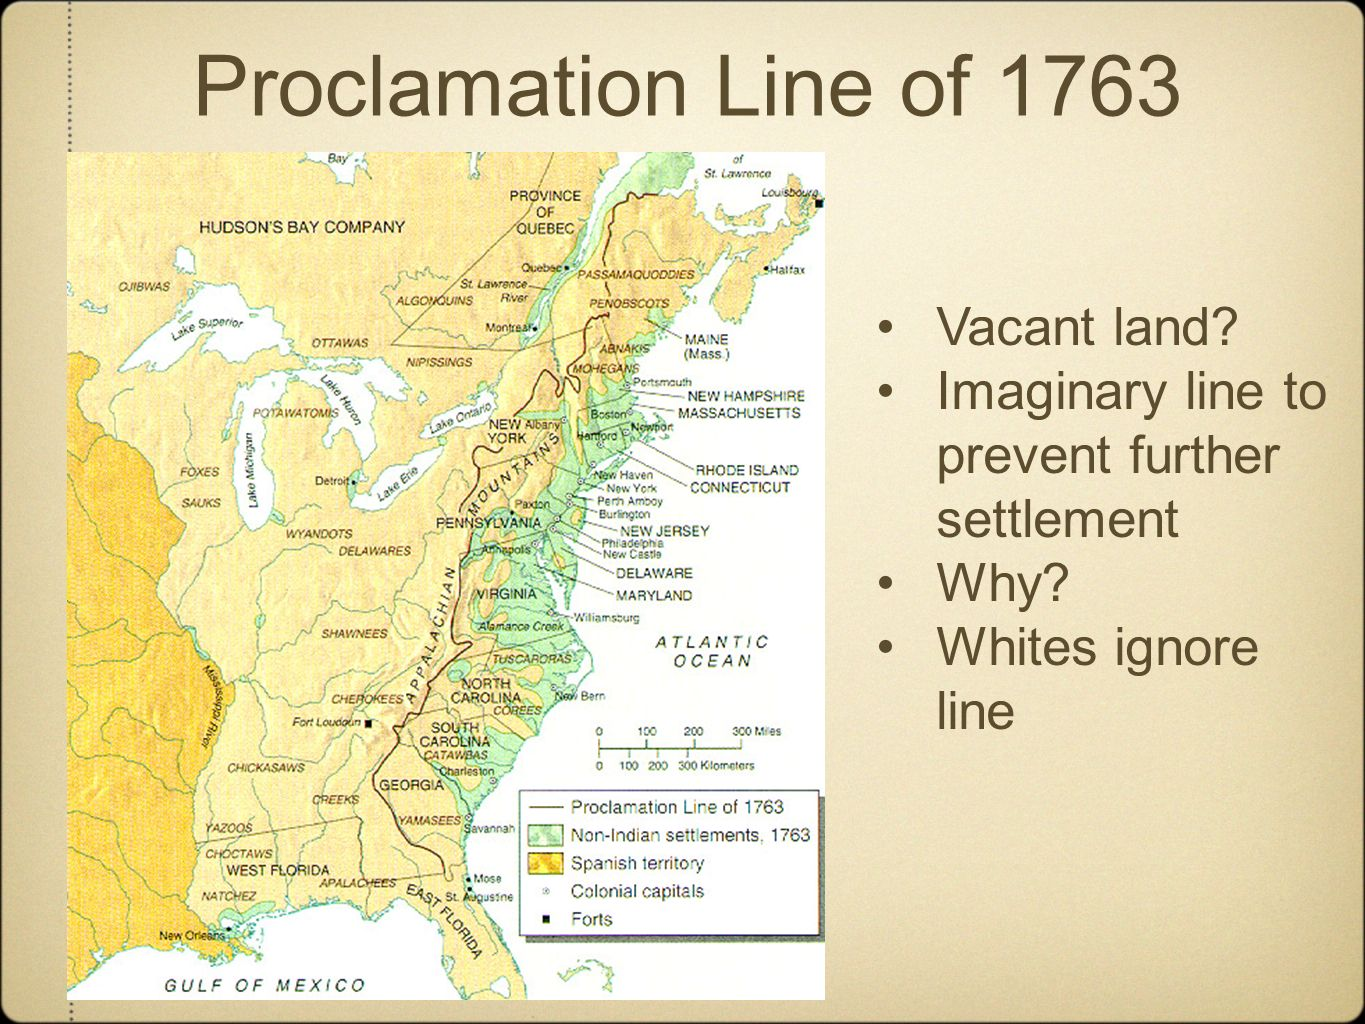 Why did the British issue the Proclamation of 1763?